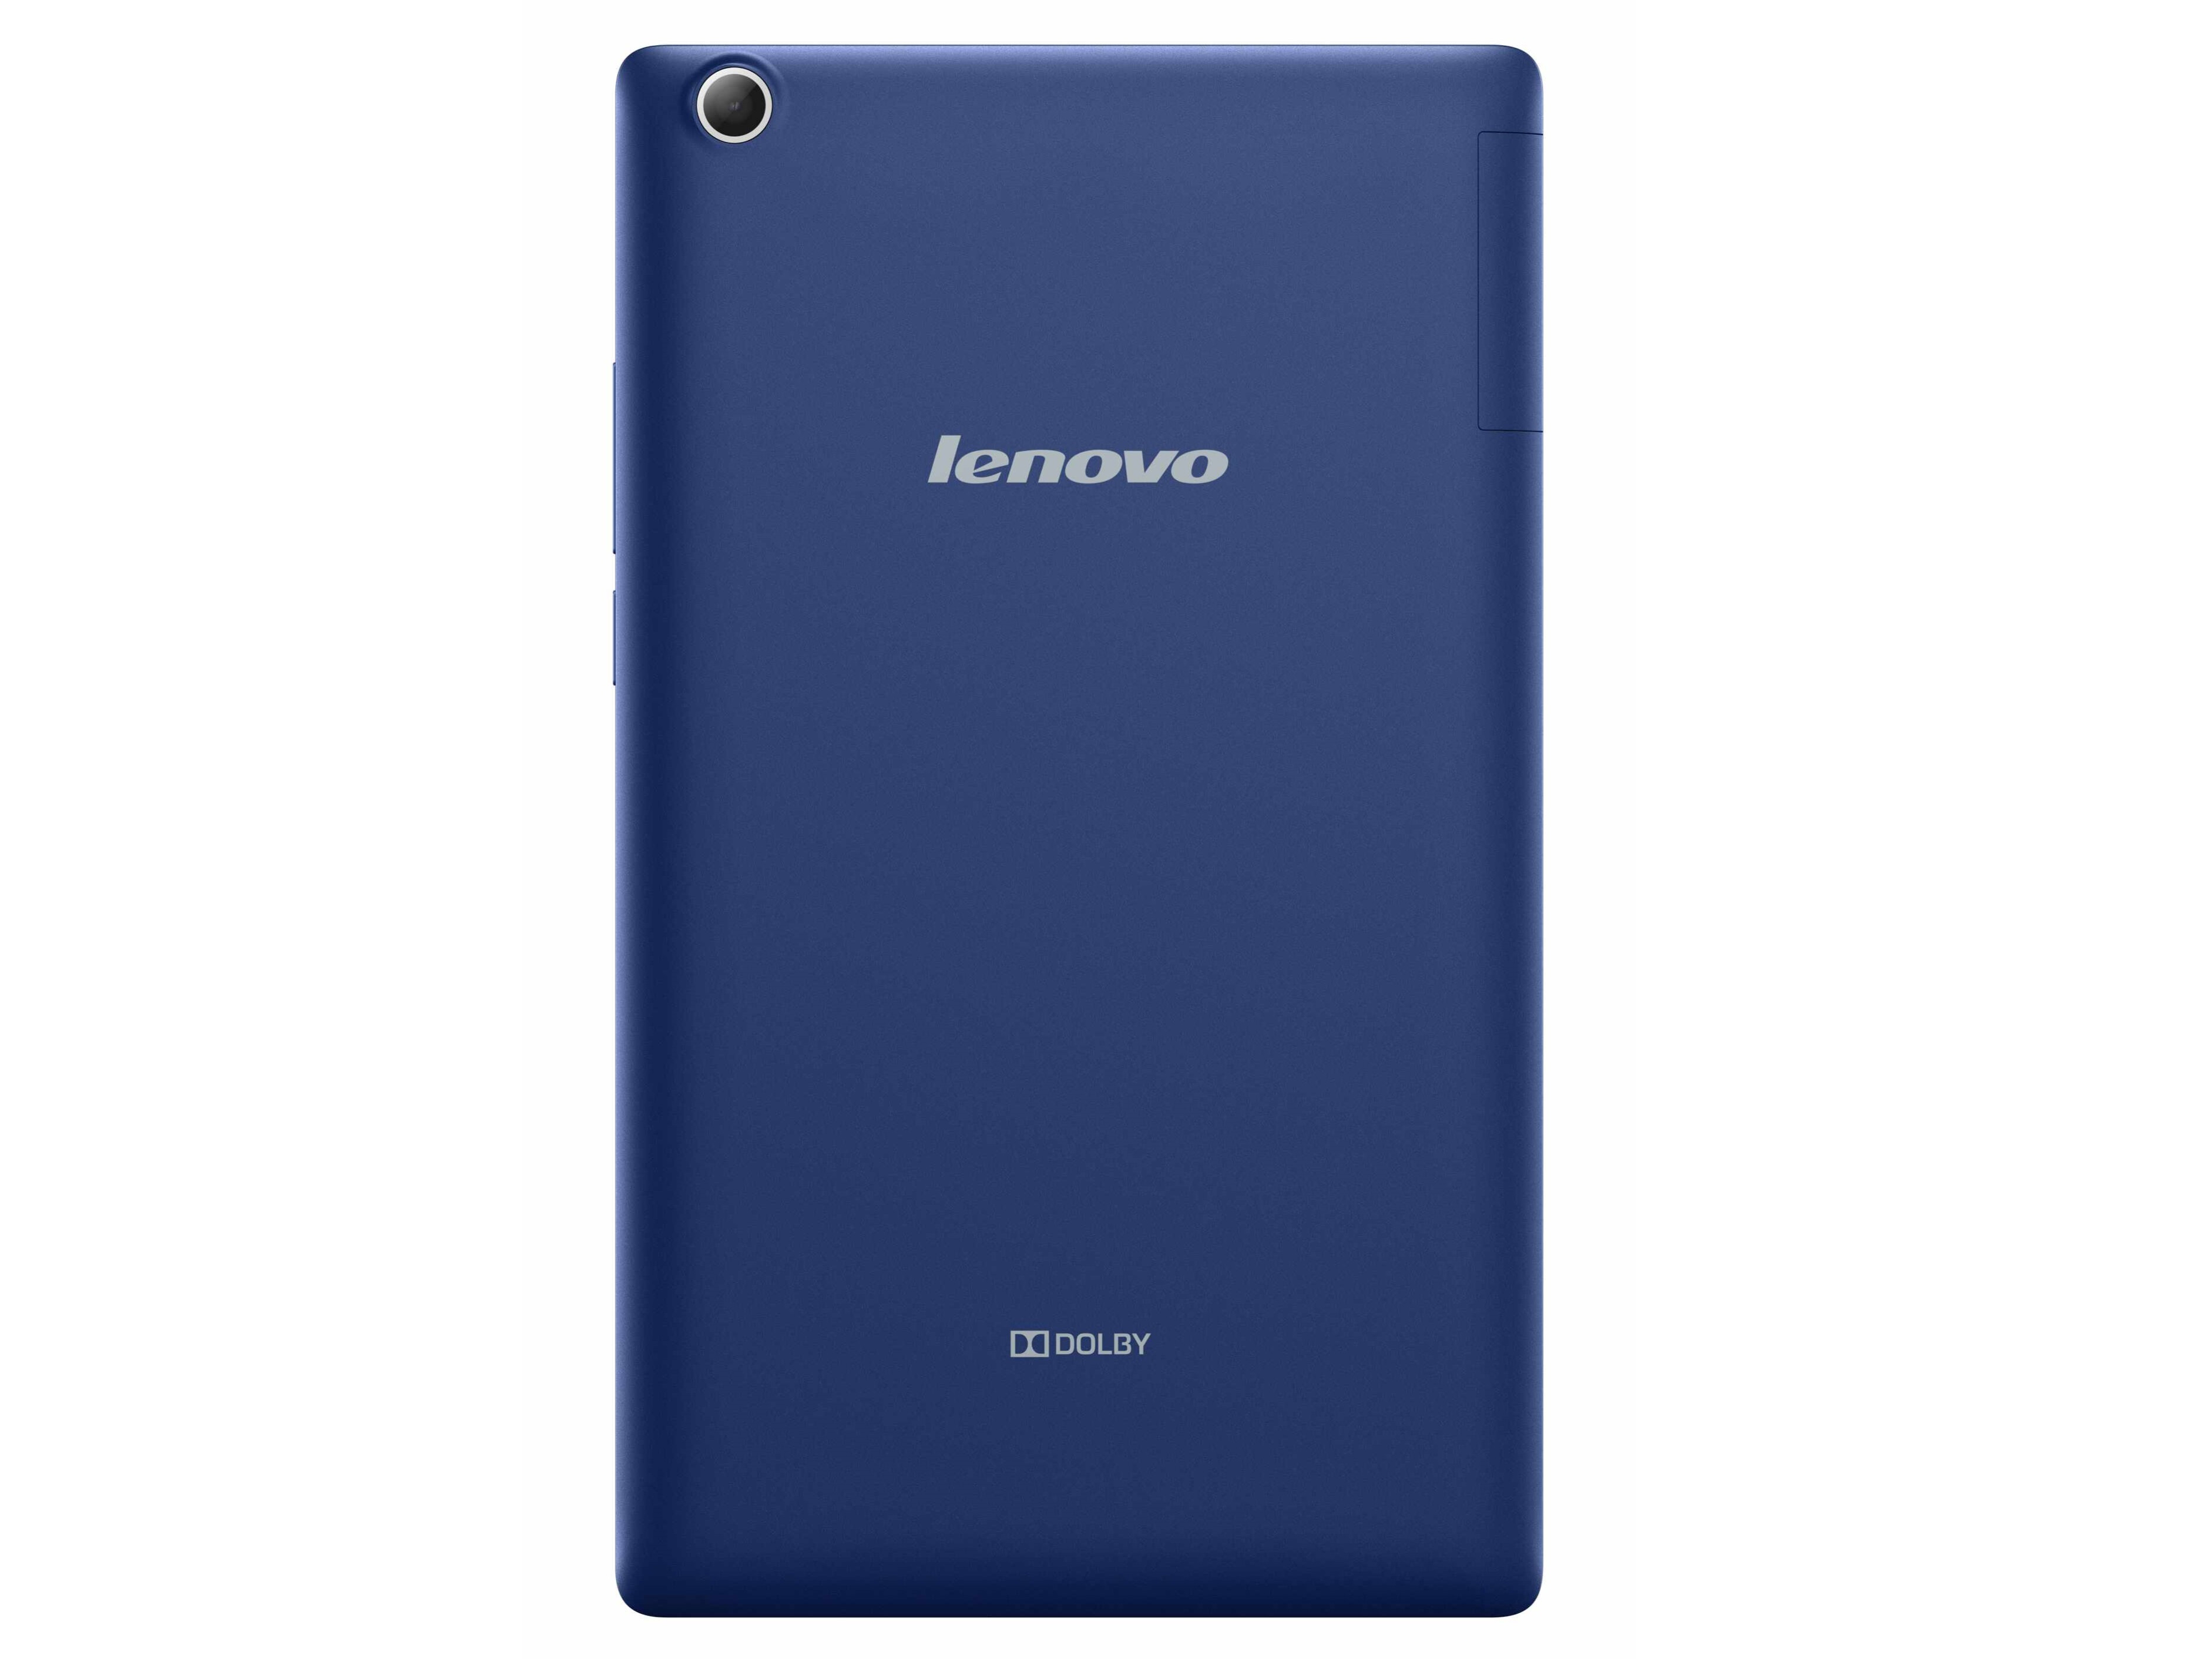 Lenovo targets the sub-$199 price range with its new TAB 2 ...